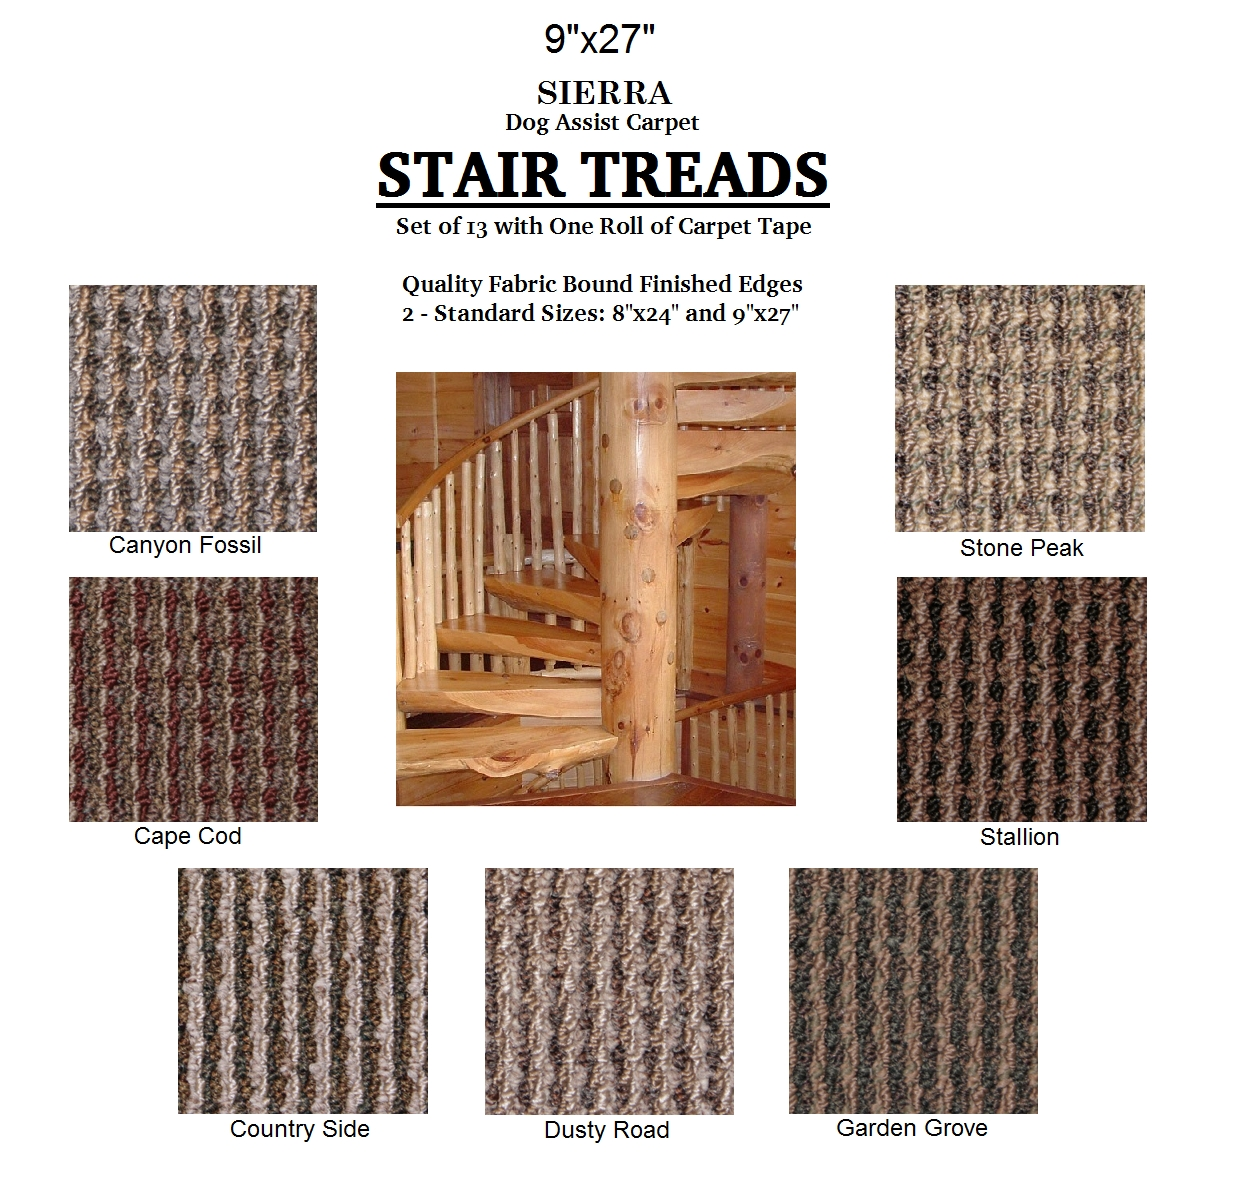 Ii Dog Assist Carpet Stair Treads With Regard To Carpet Stair Treads For Dogs (#16 of 20)